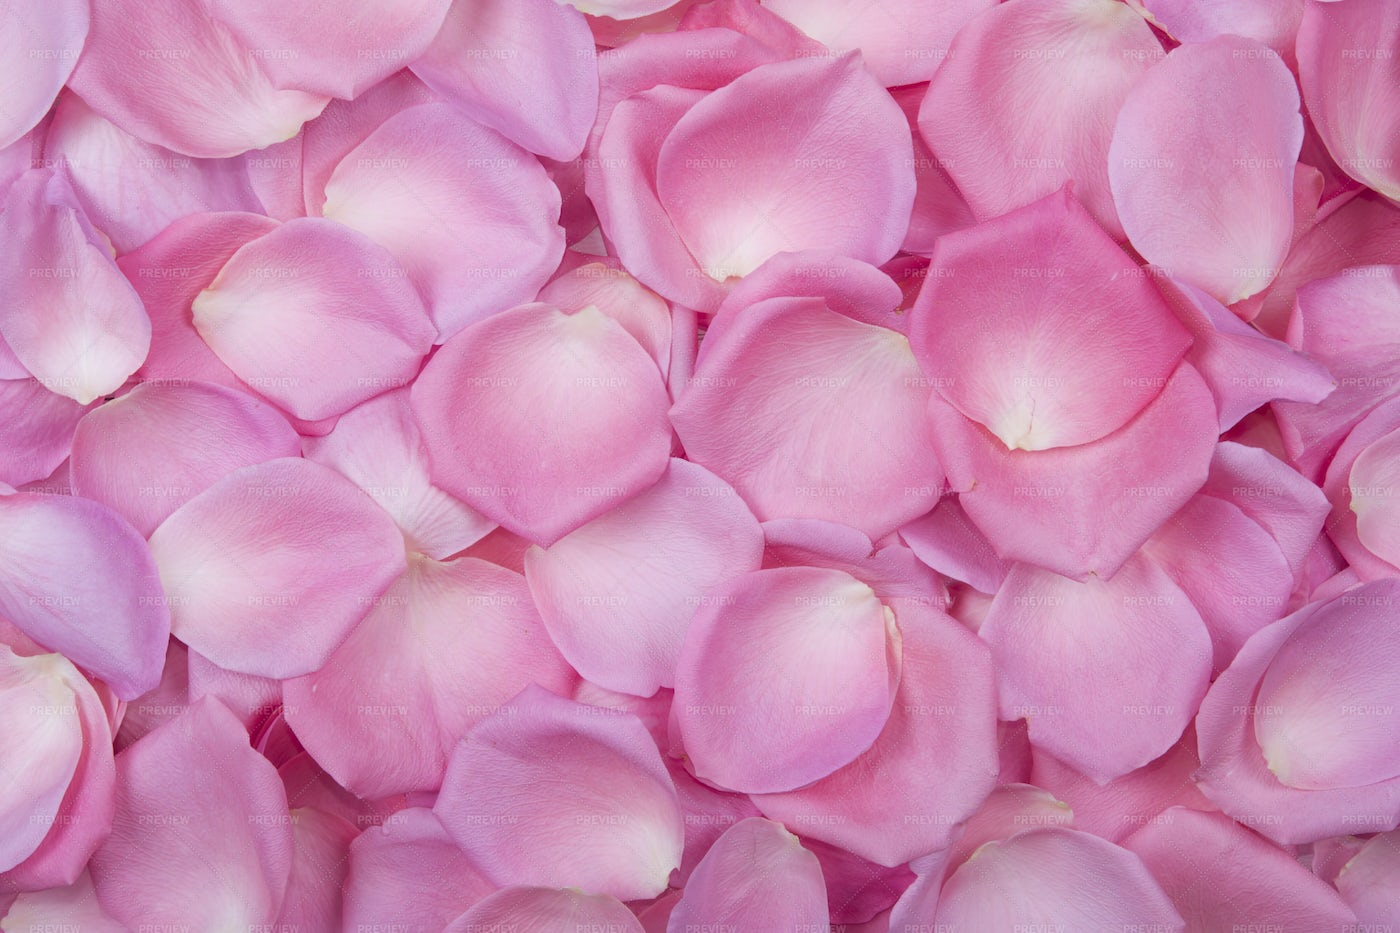 Background Of Pink Rose Petals: Stock Photos